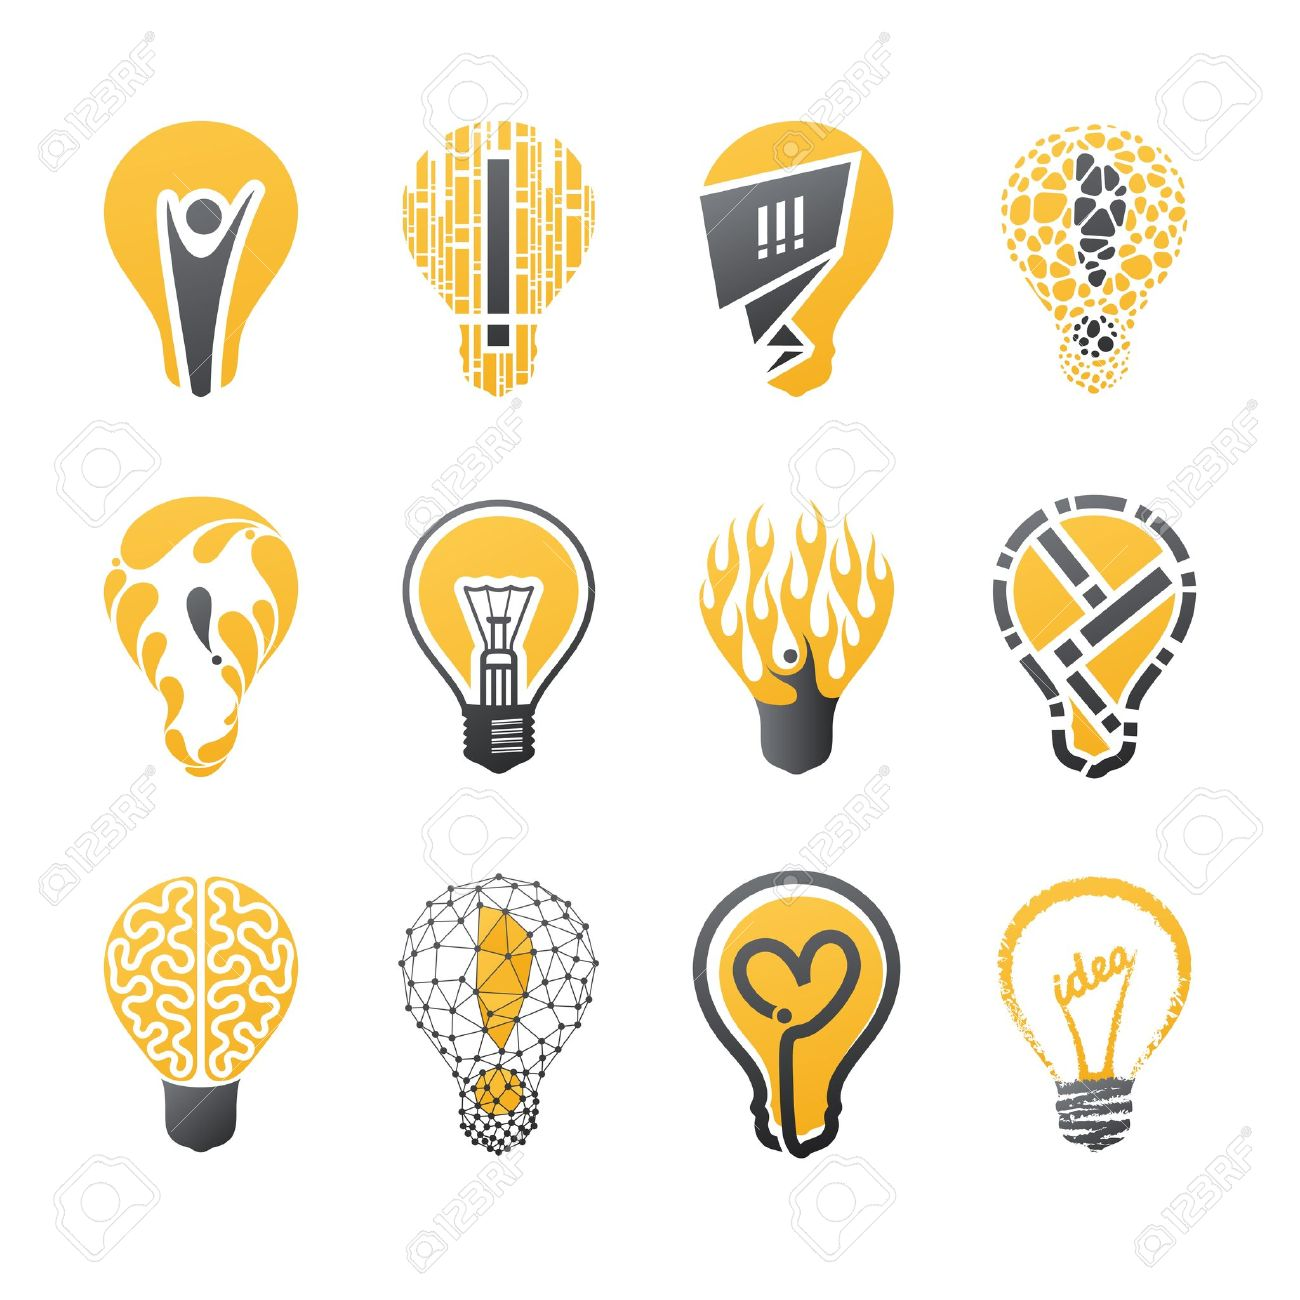 light bulb idea vector logo template set collection of design elements icons set - Idea Design